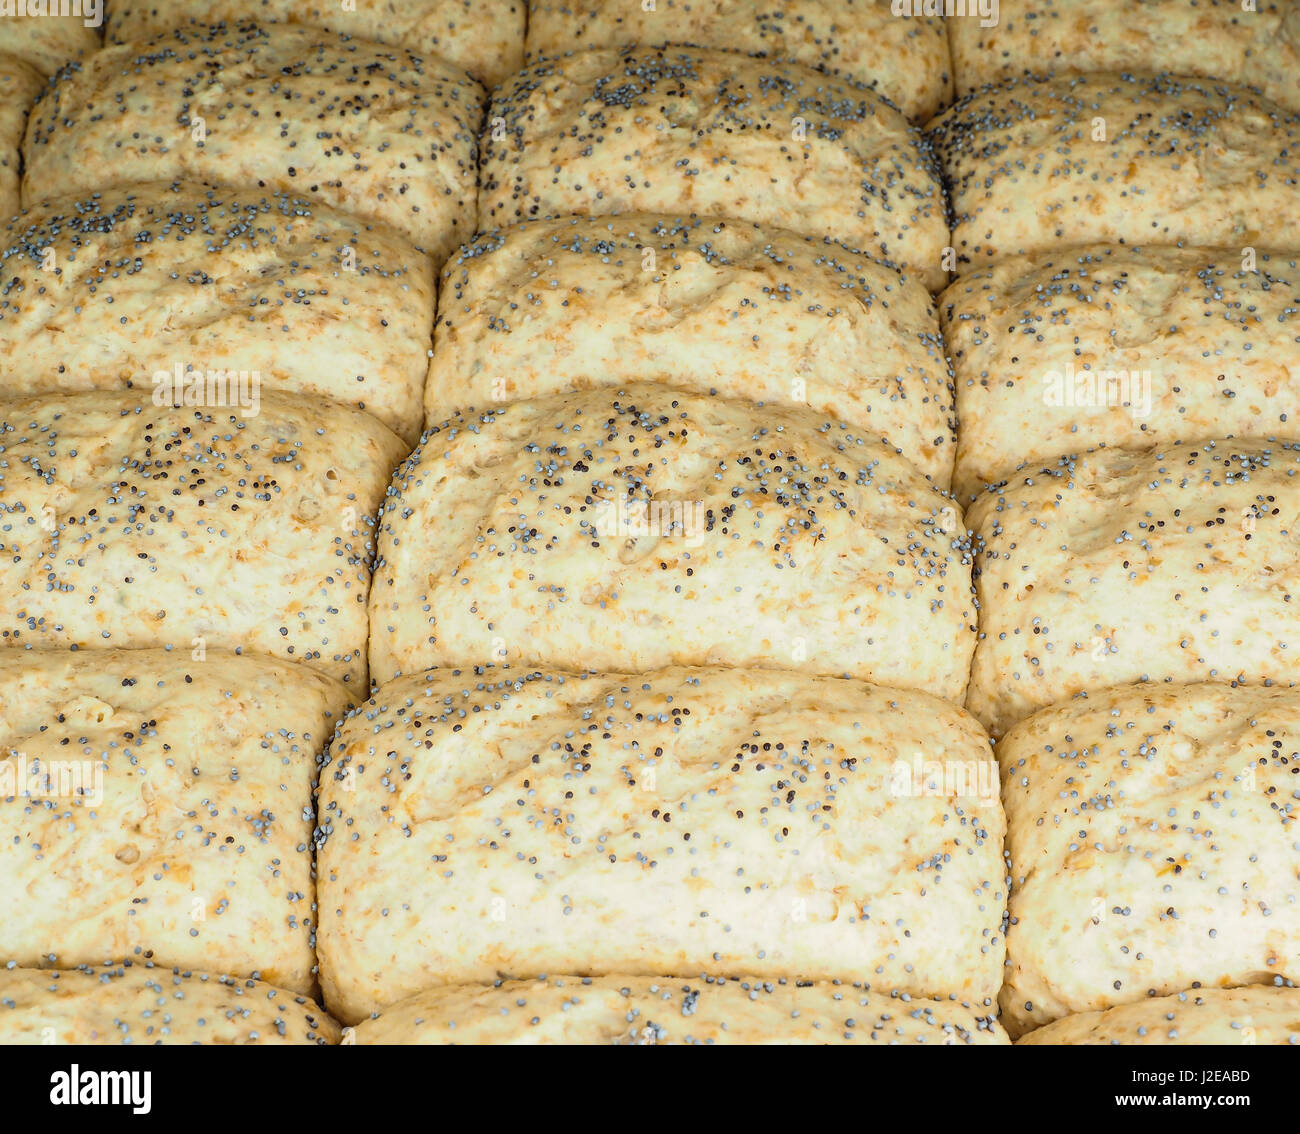 Closeup of proofed unbaked rolls with poppy seeds - Stock Image